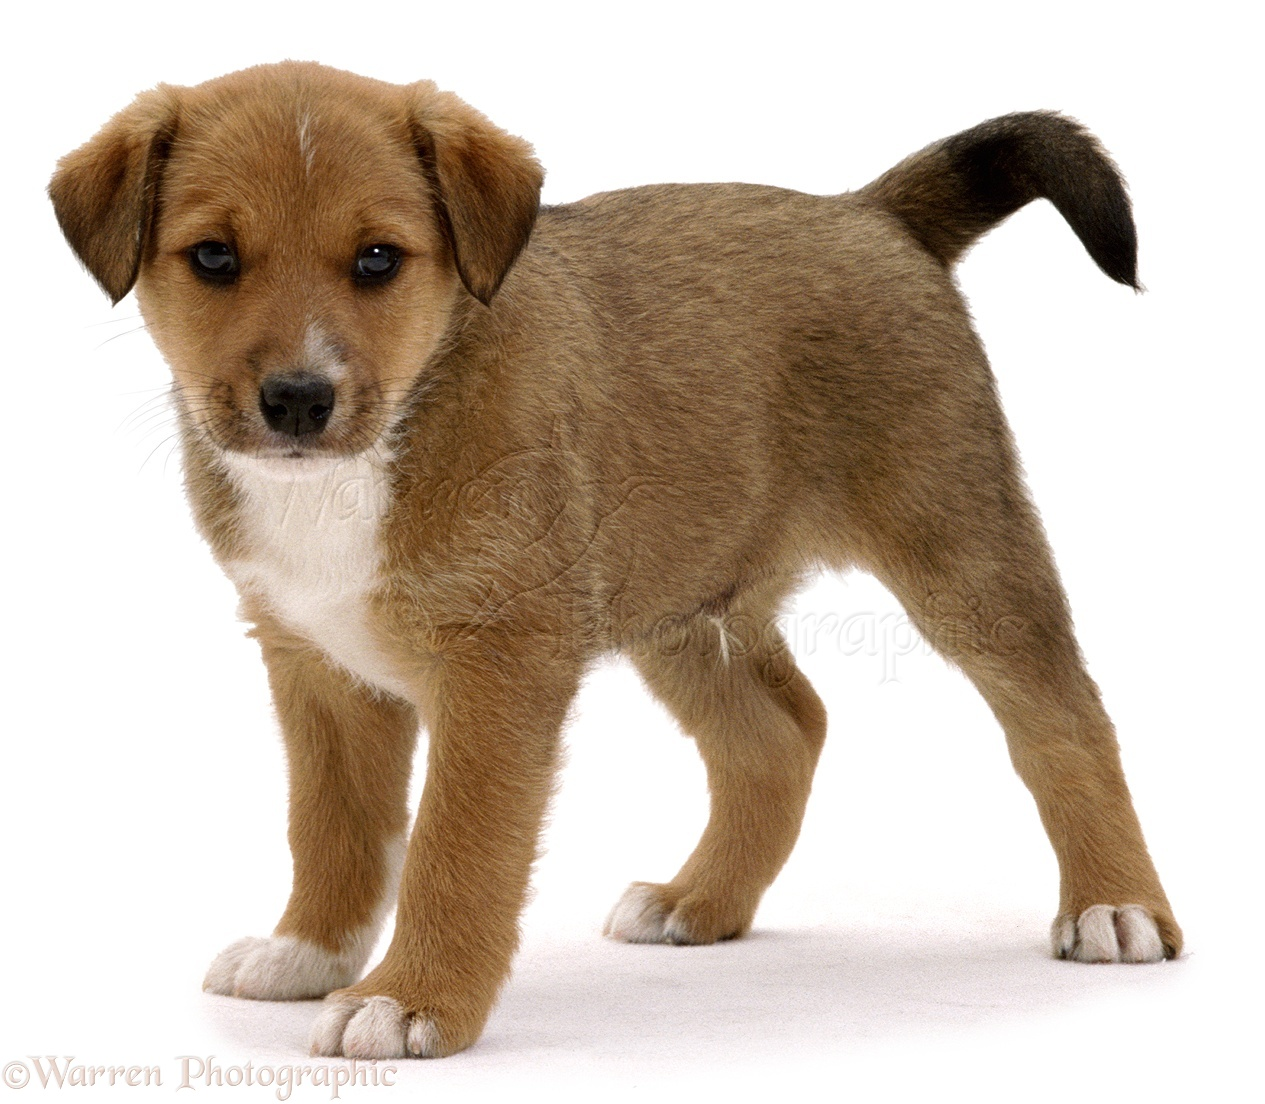 Dog: Small brown puppy photo - WP02272